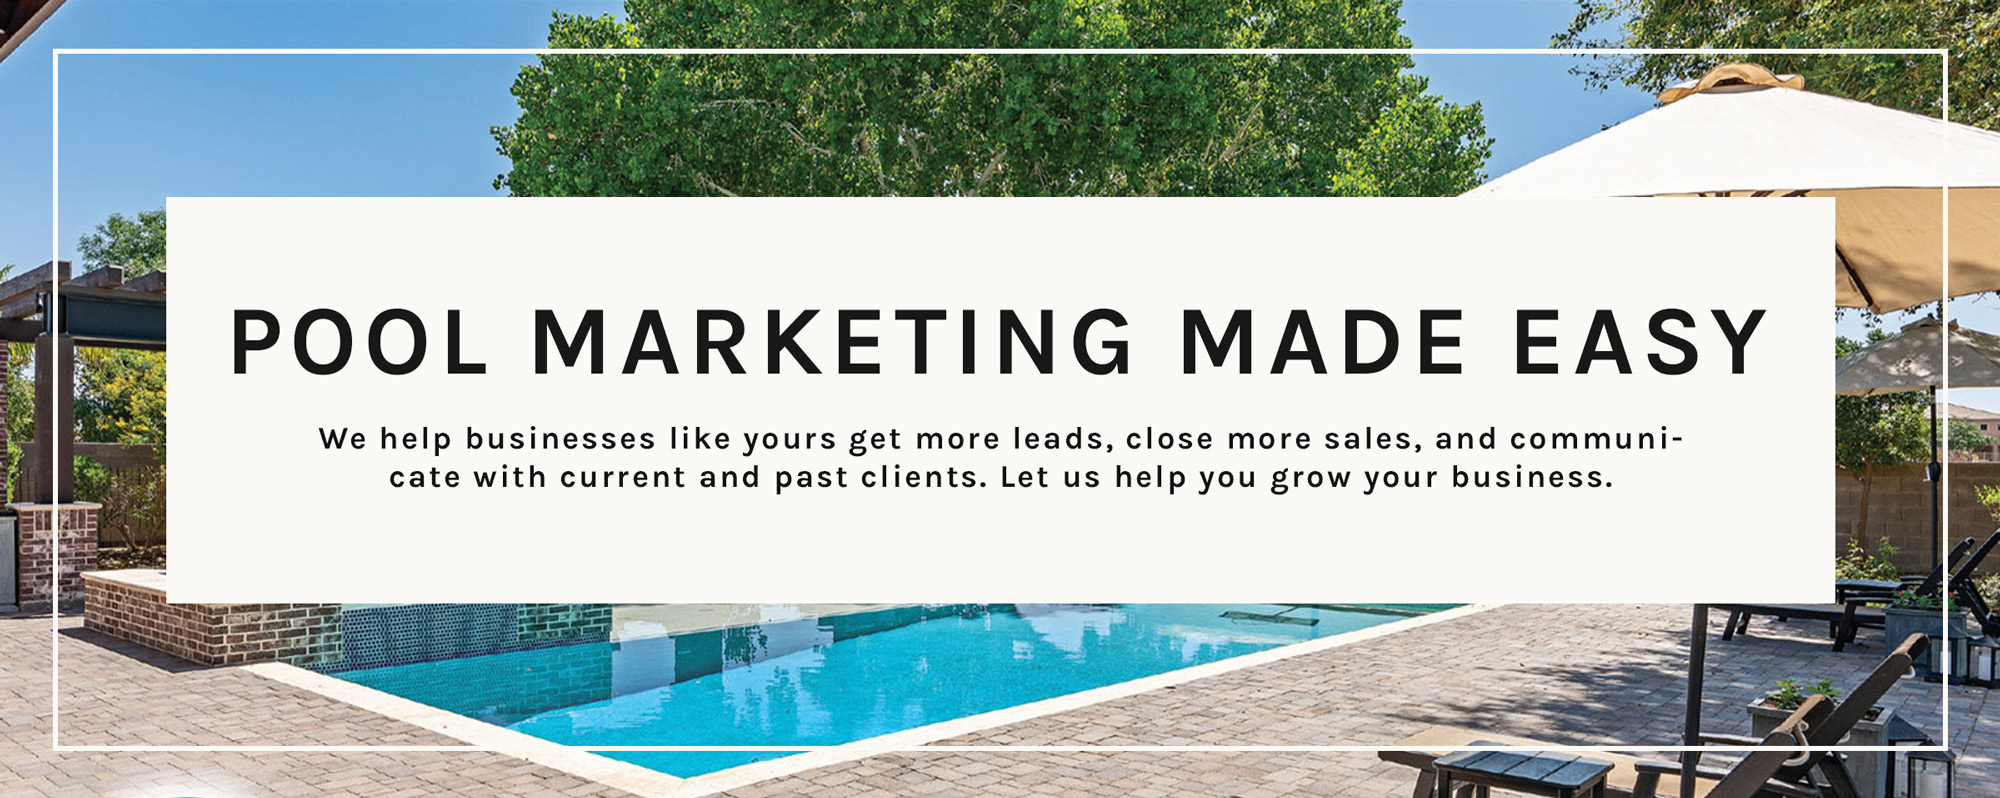 We help businesses like yours get more leads, close more sales, and communicate with current and past clients.